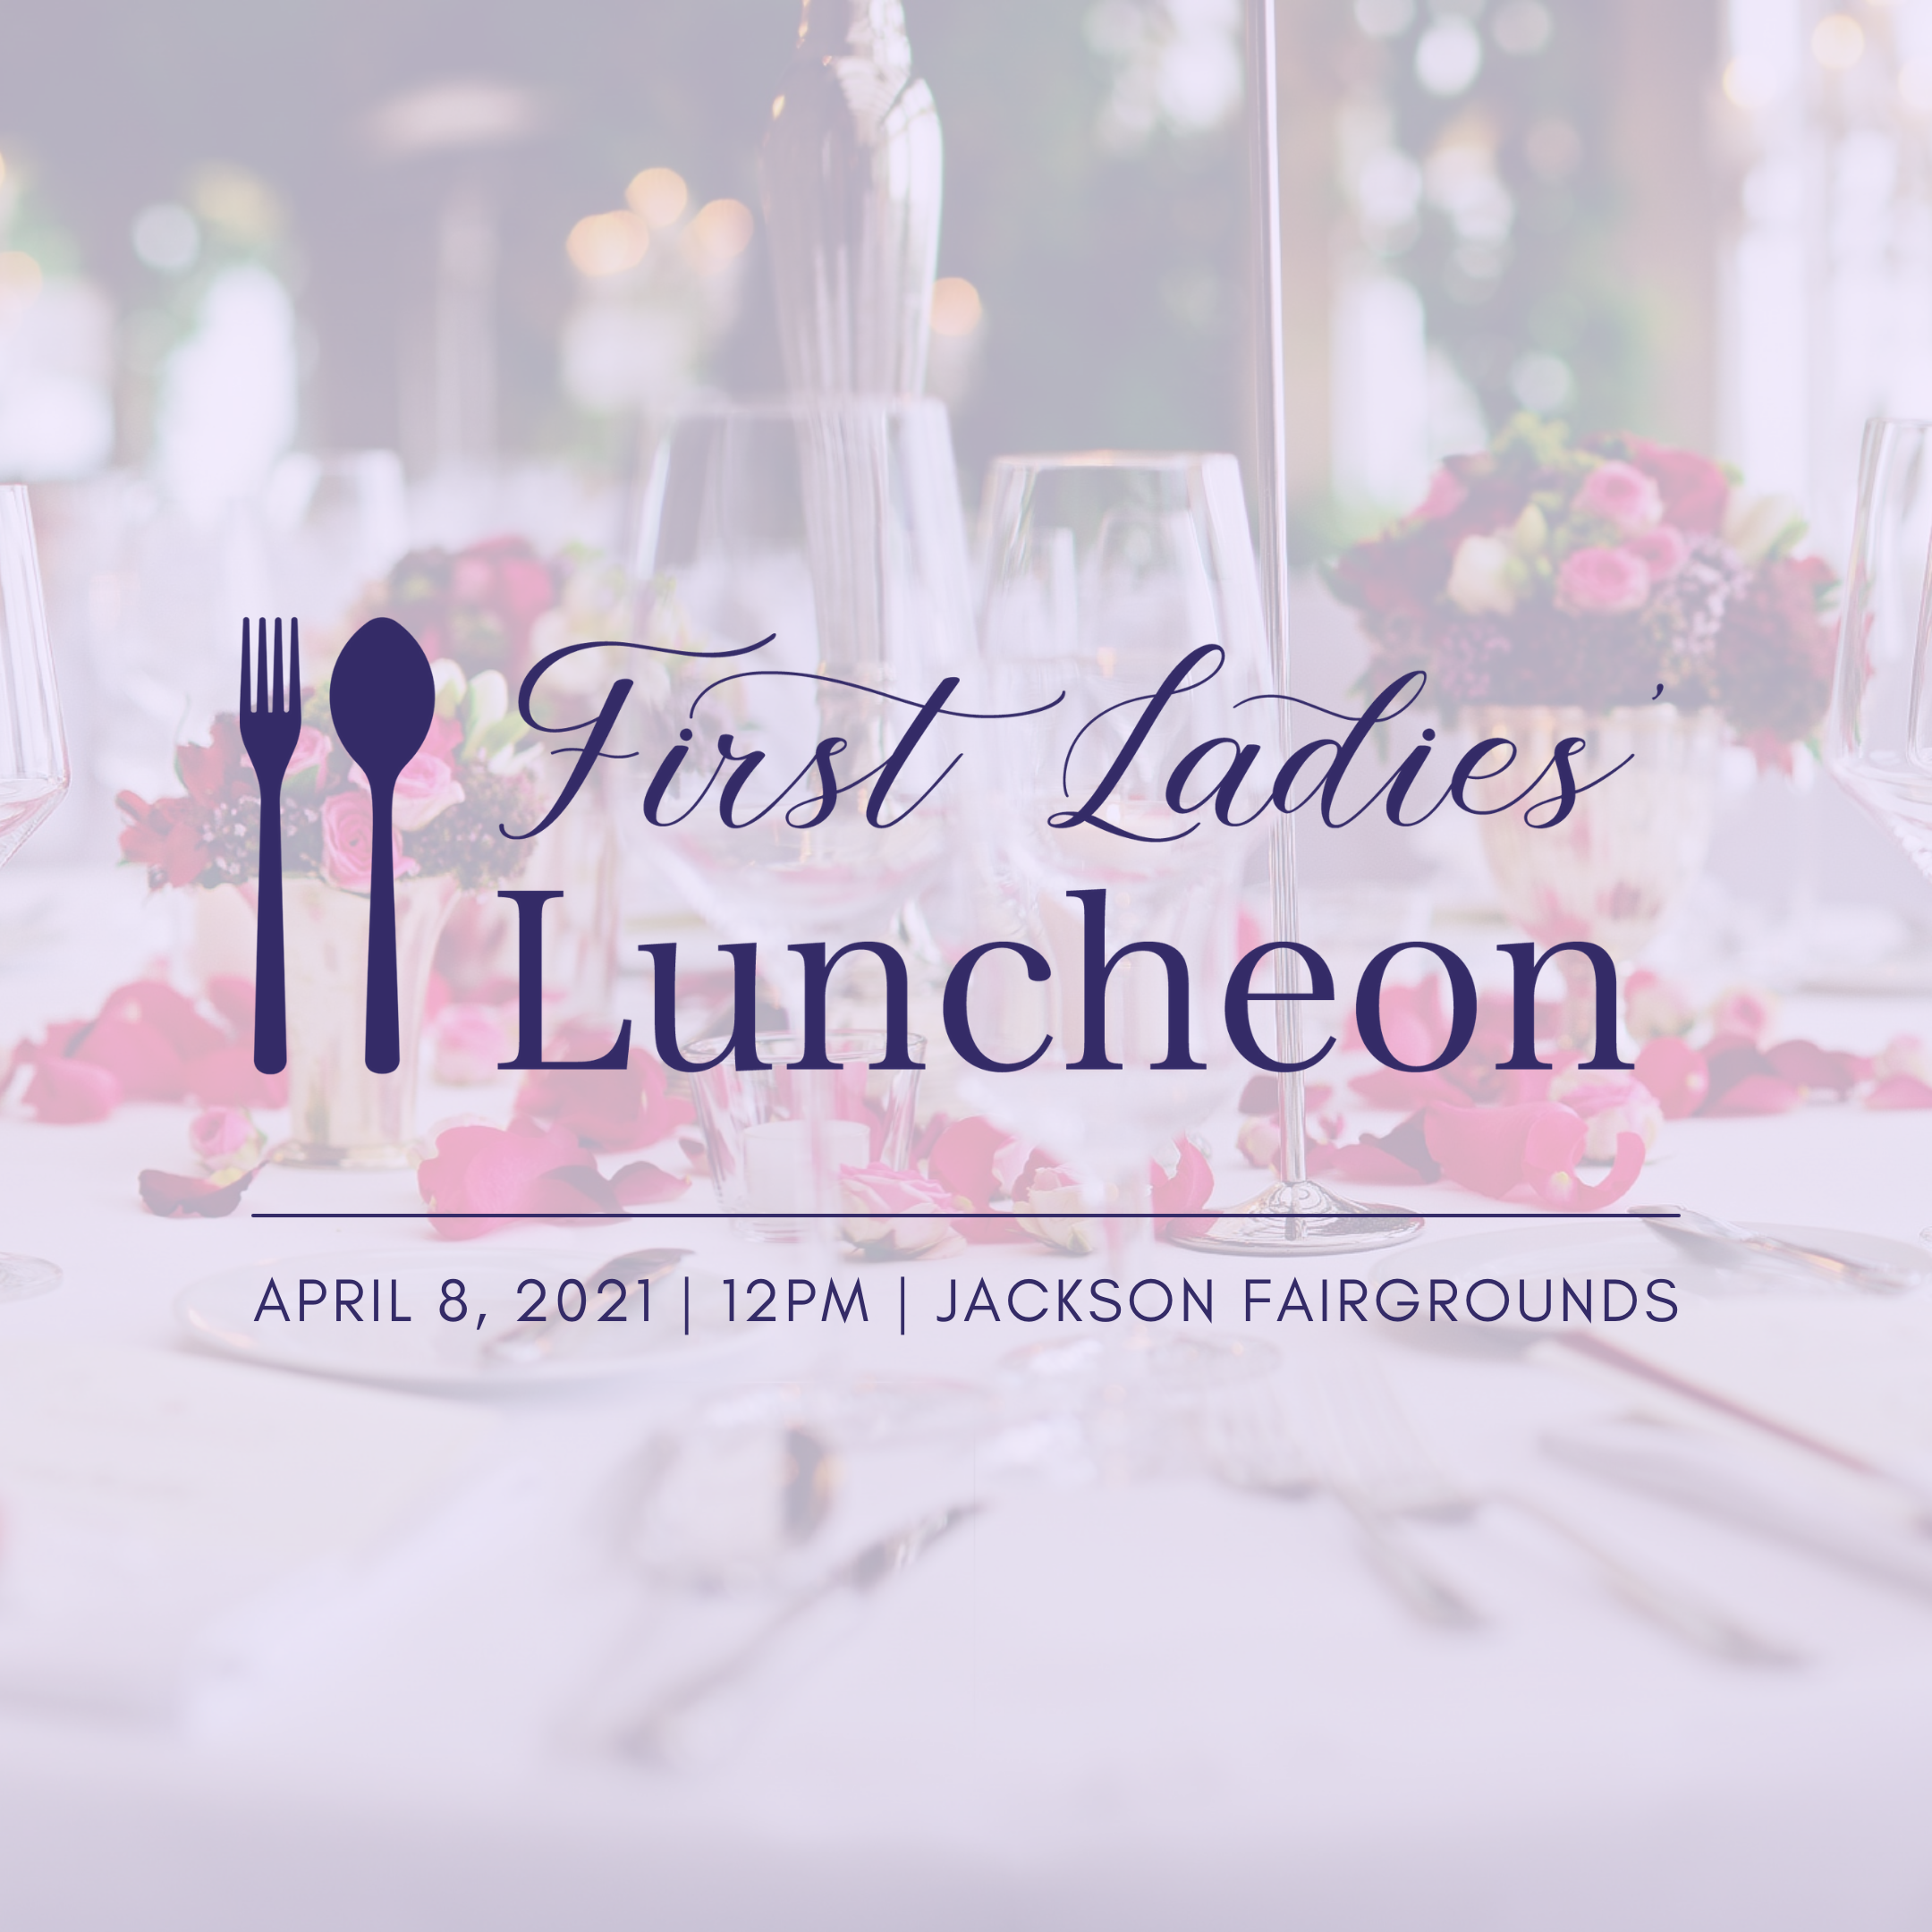 8th Annual First Ladies' Outdoor Luncheon